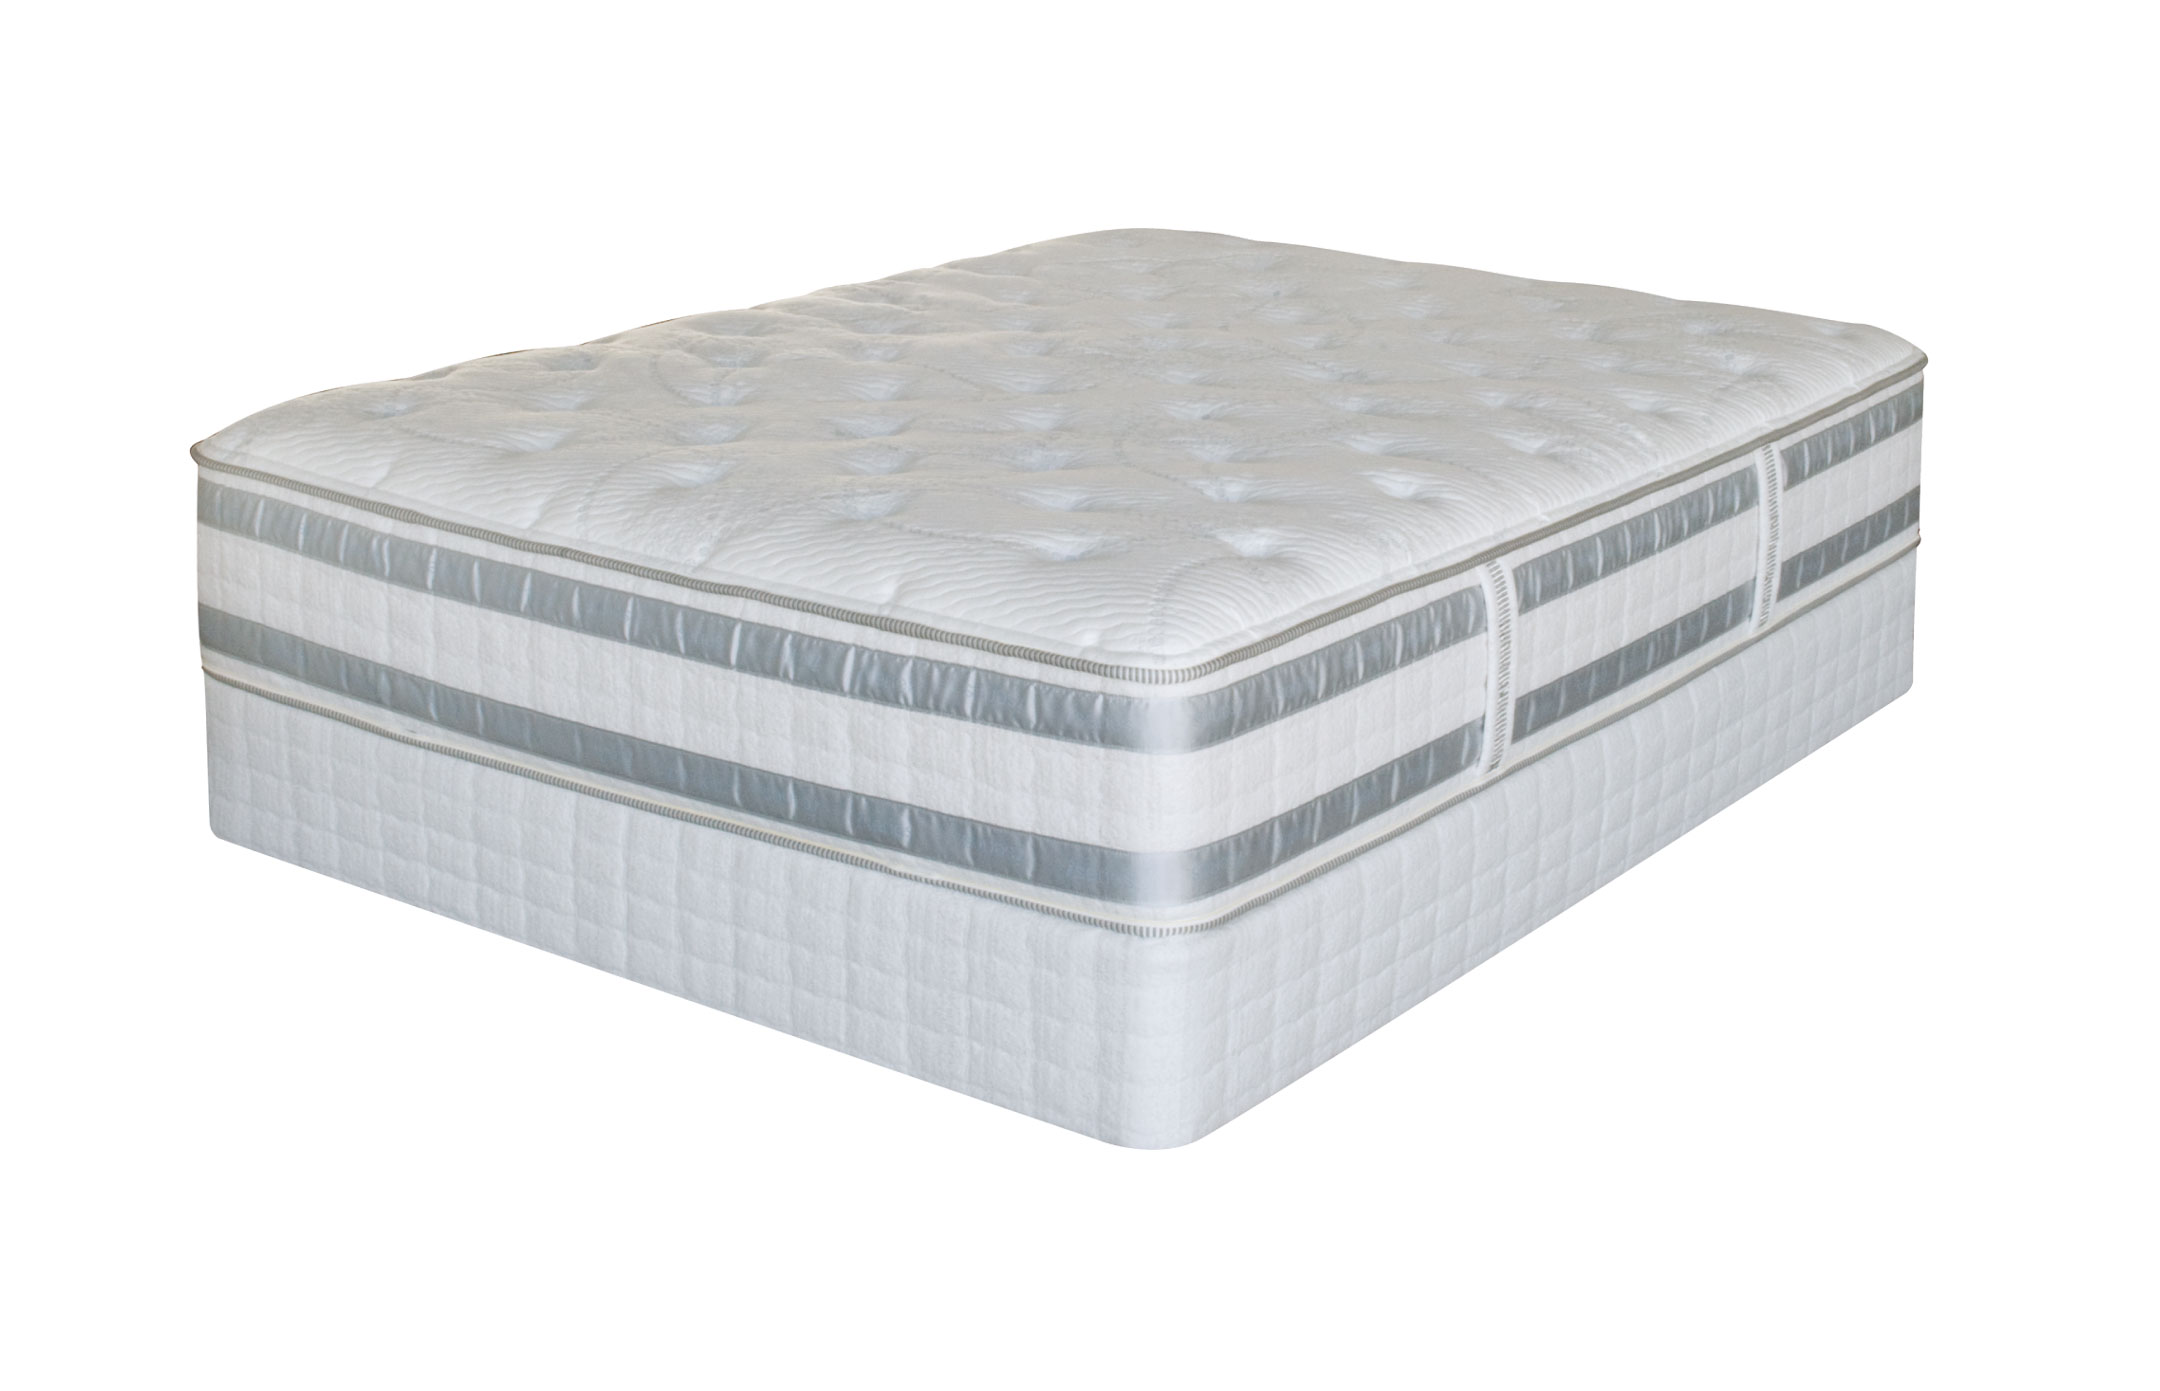 Serta Perfect Day iSeries Applause Plush  Mattress Reviews  GoodBedcom